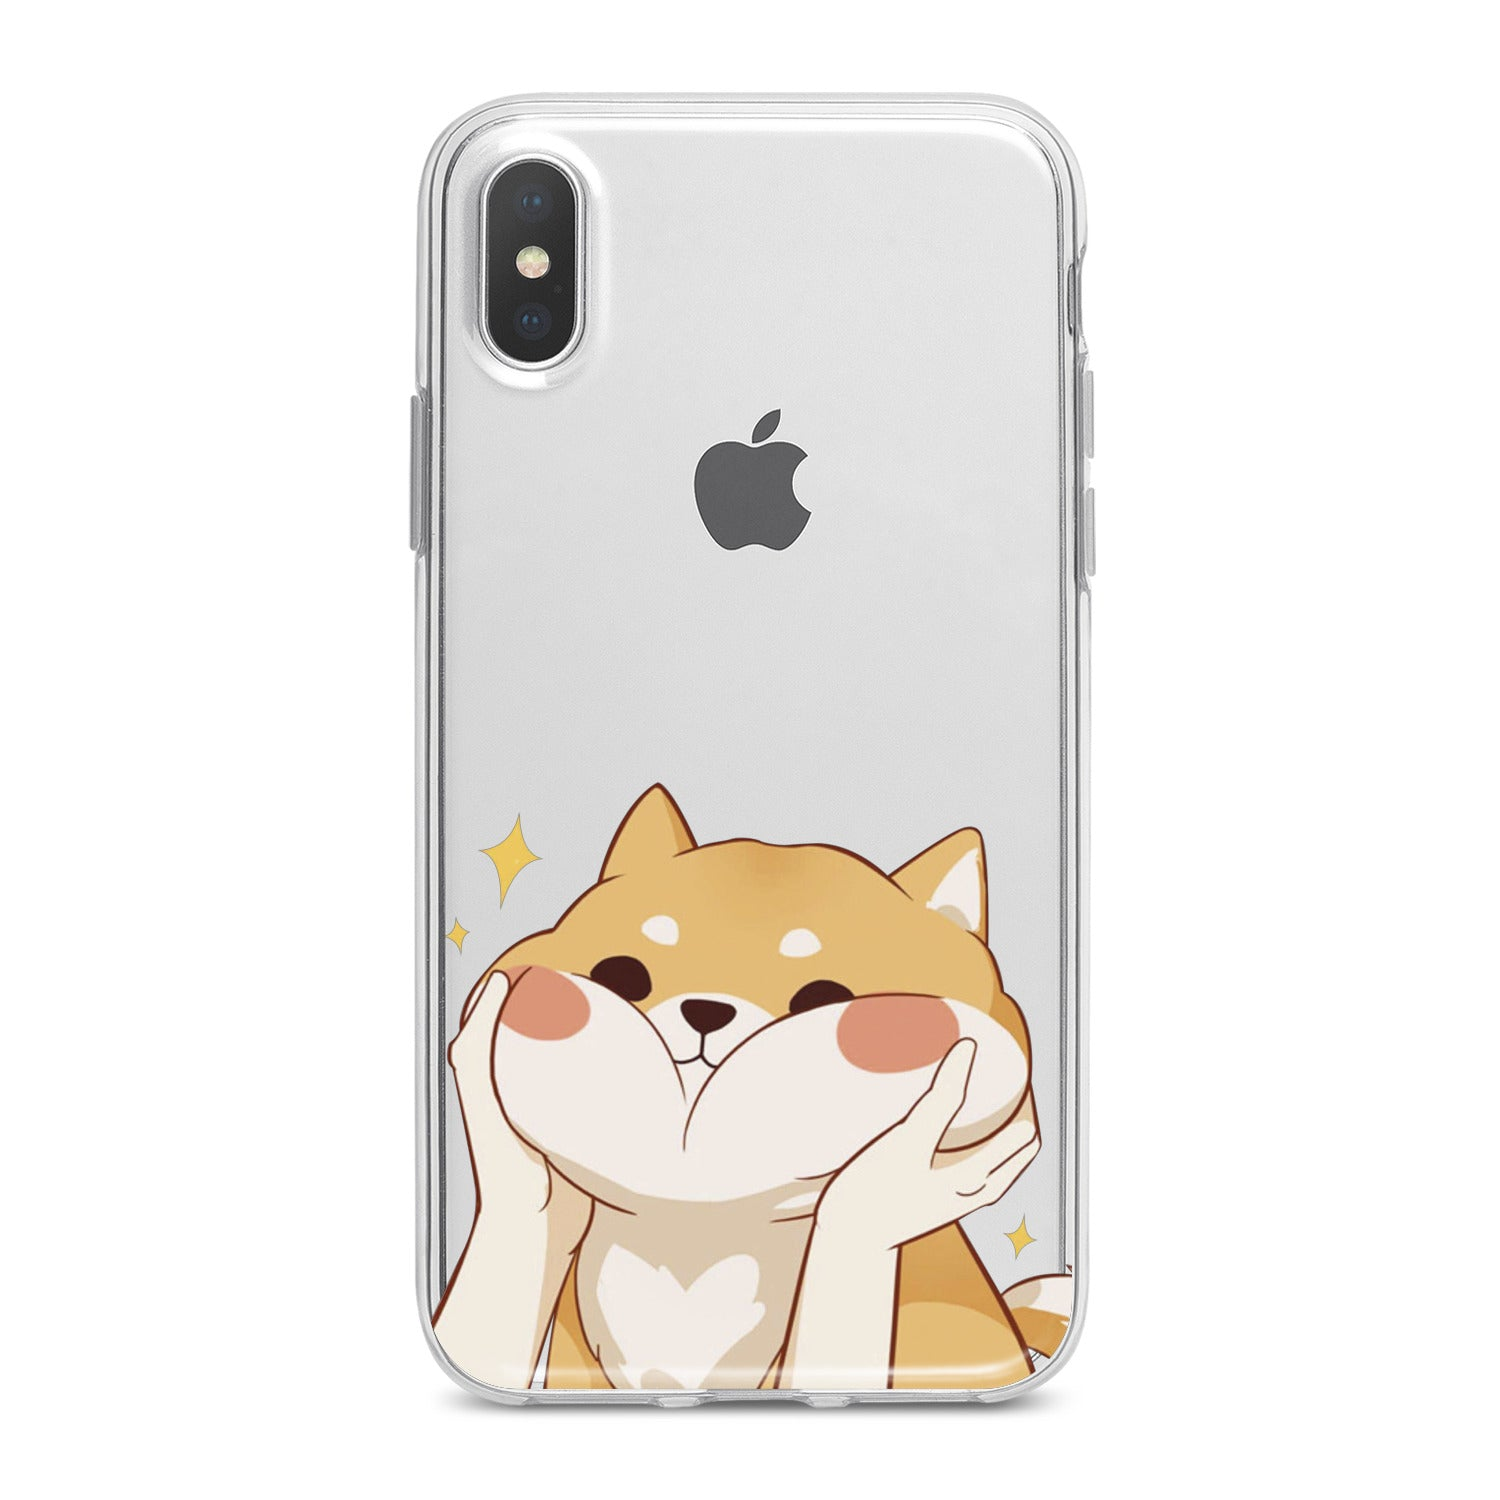 Lex Altern Shiba Inu Phone Case for your iPhone & Android phone.